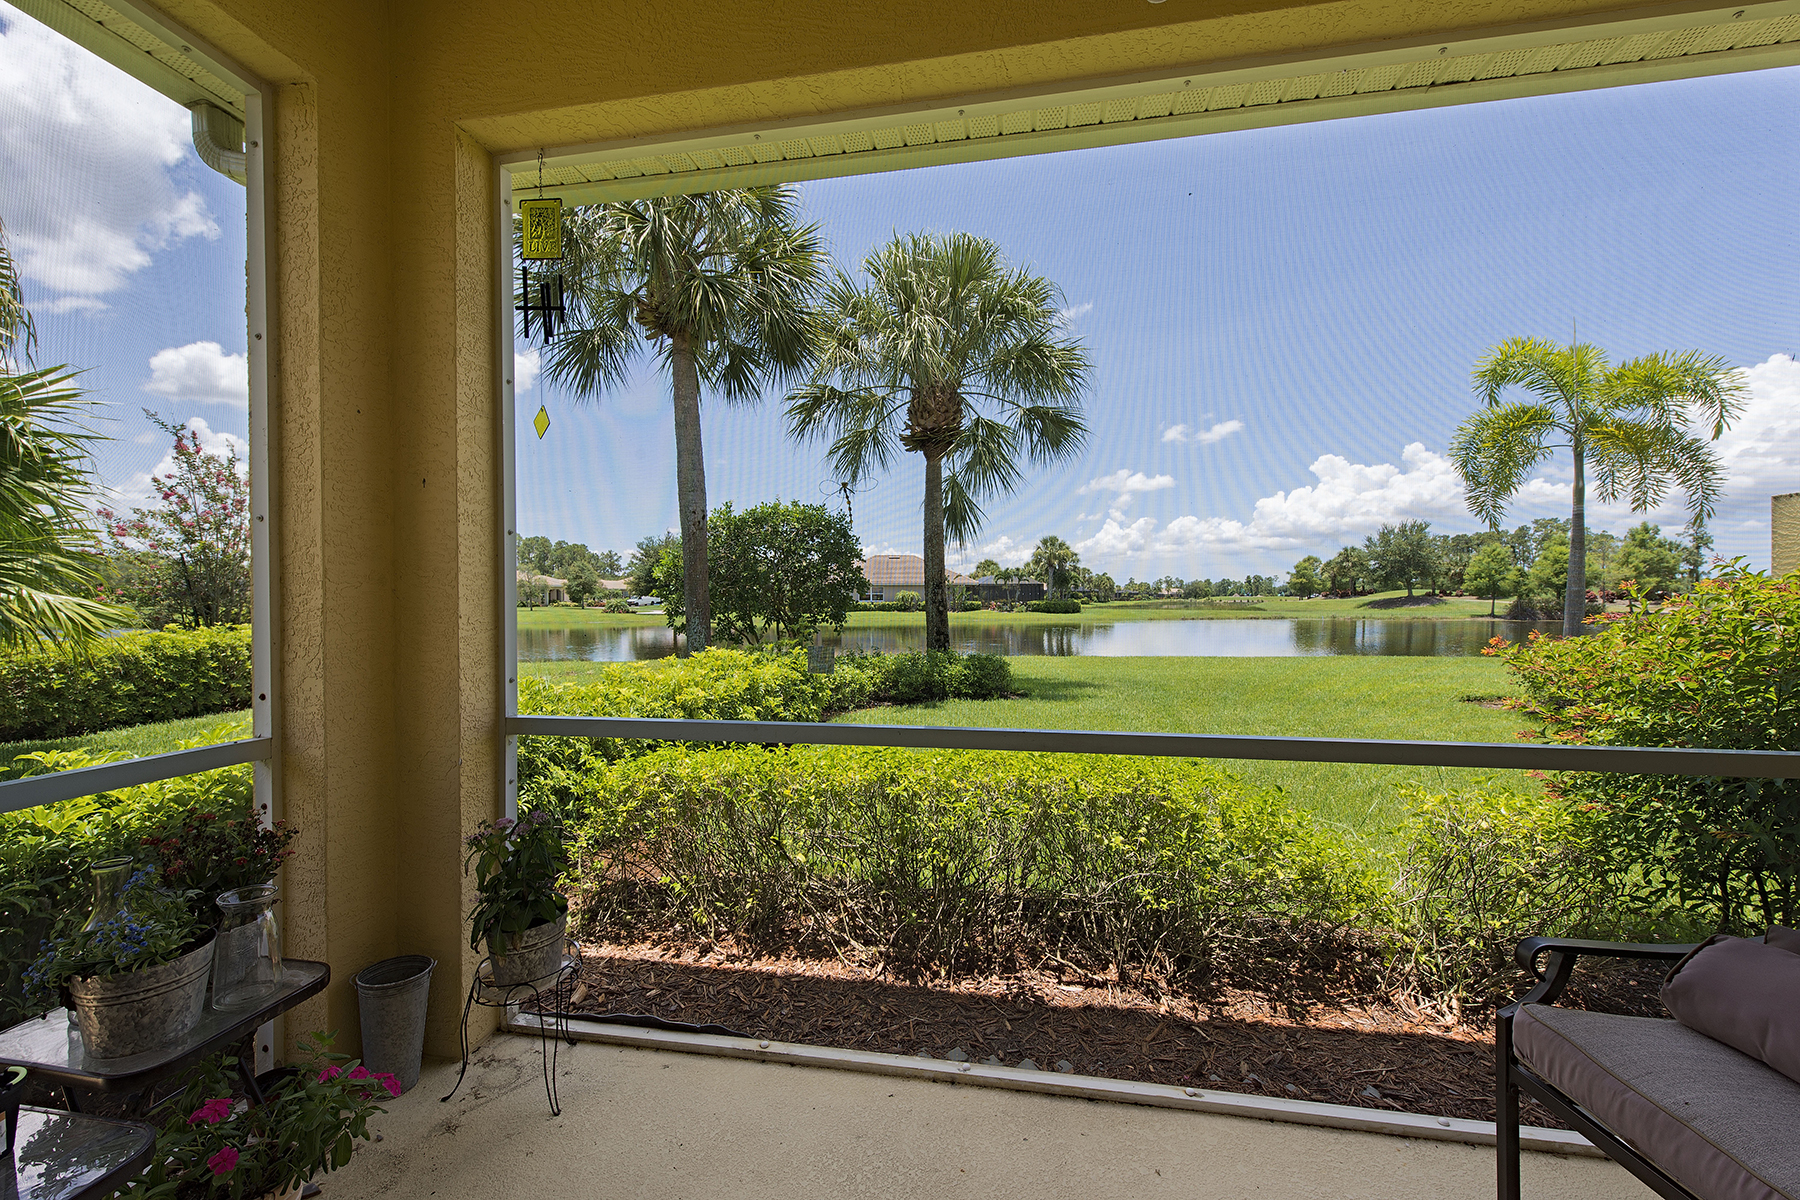 Townhouse for Sale at PELICAN PRESERVE - VERONA 10541 Diamante Way Fort Myers, Florida, 33913 United States